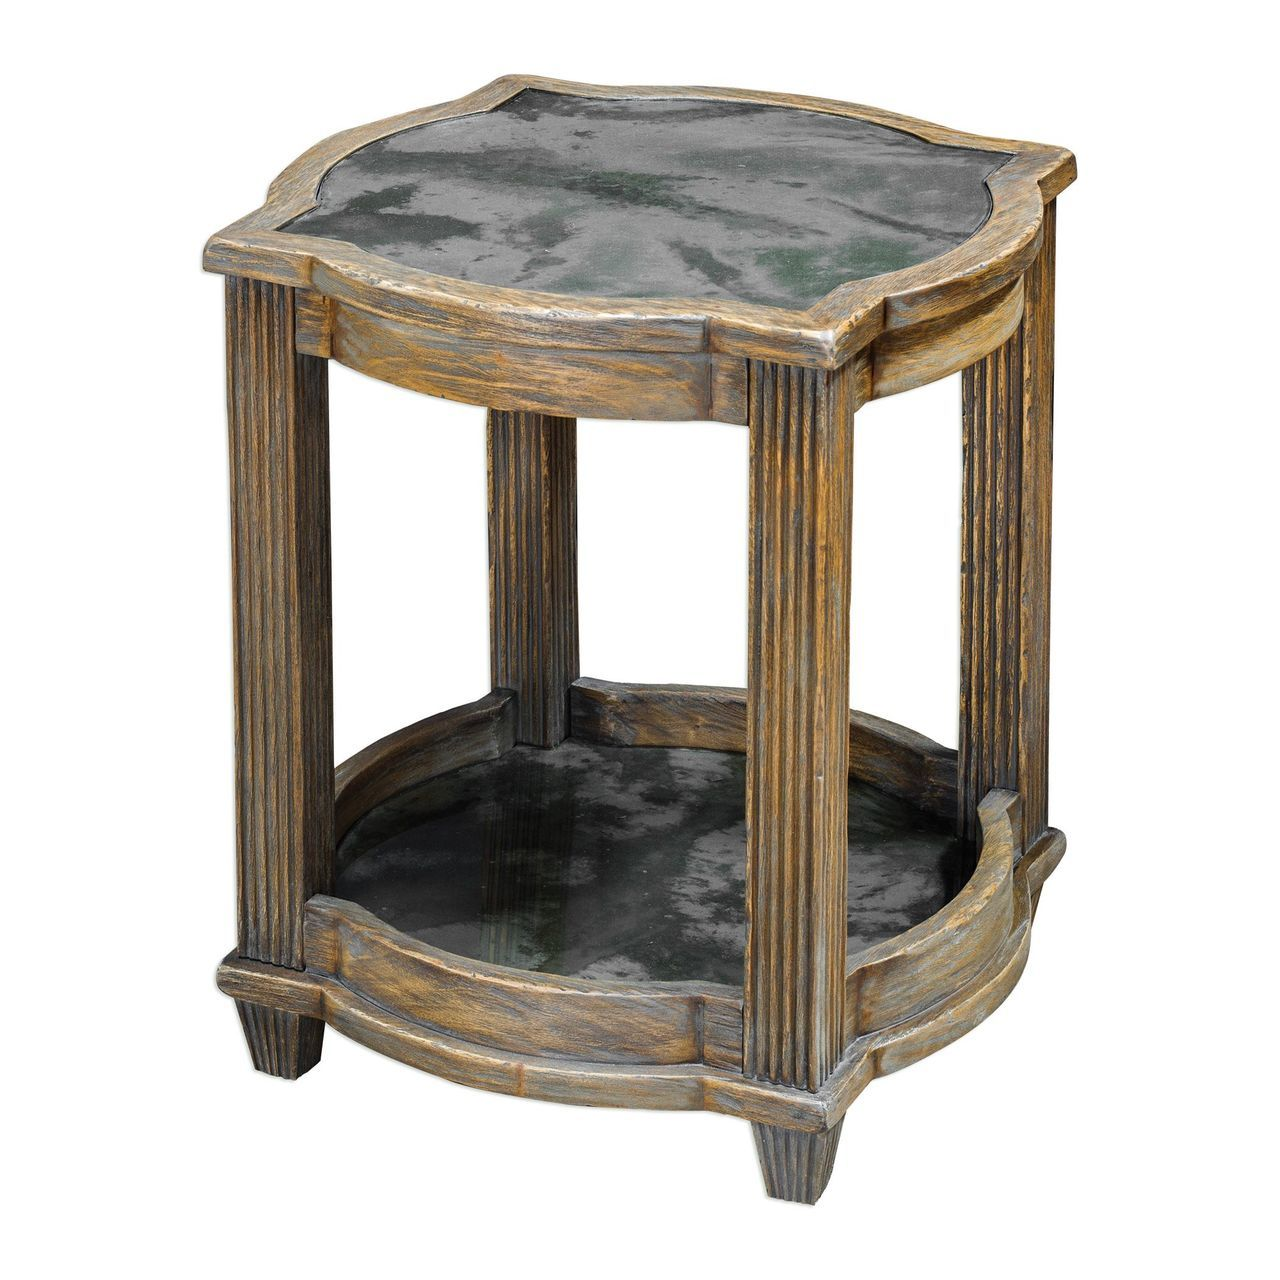 stackable tables probably terrific awesome vintage looking end rustic wood quatrefoil small accent table style antiqued drawer marshalls home goods floor ikea coffee project baker